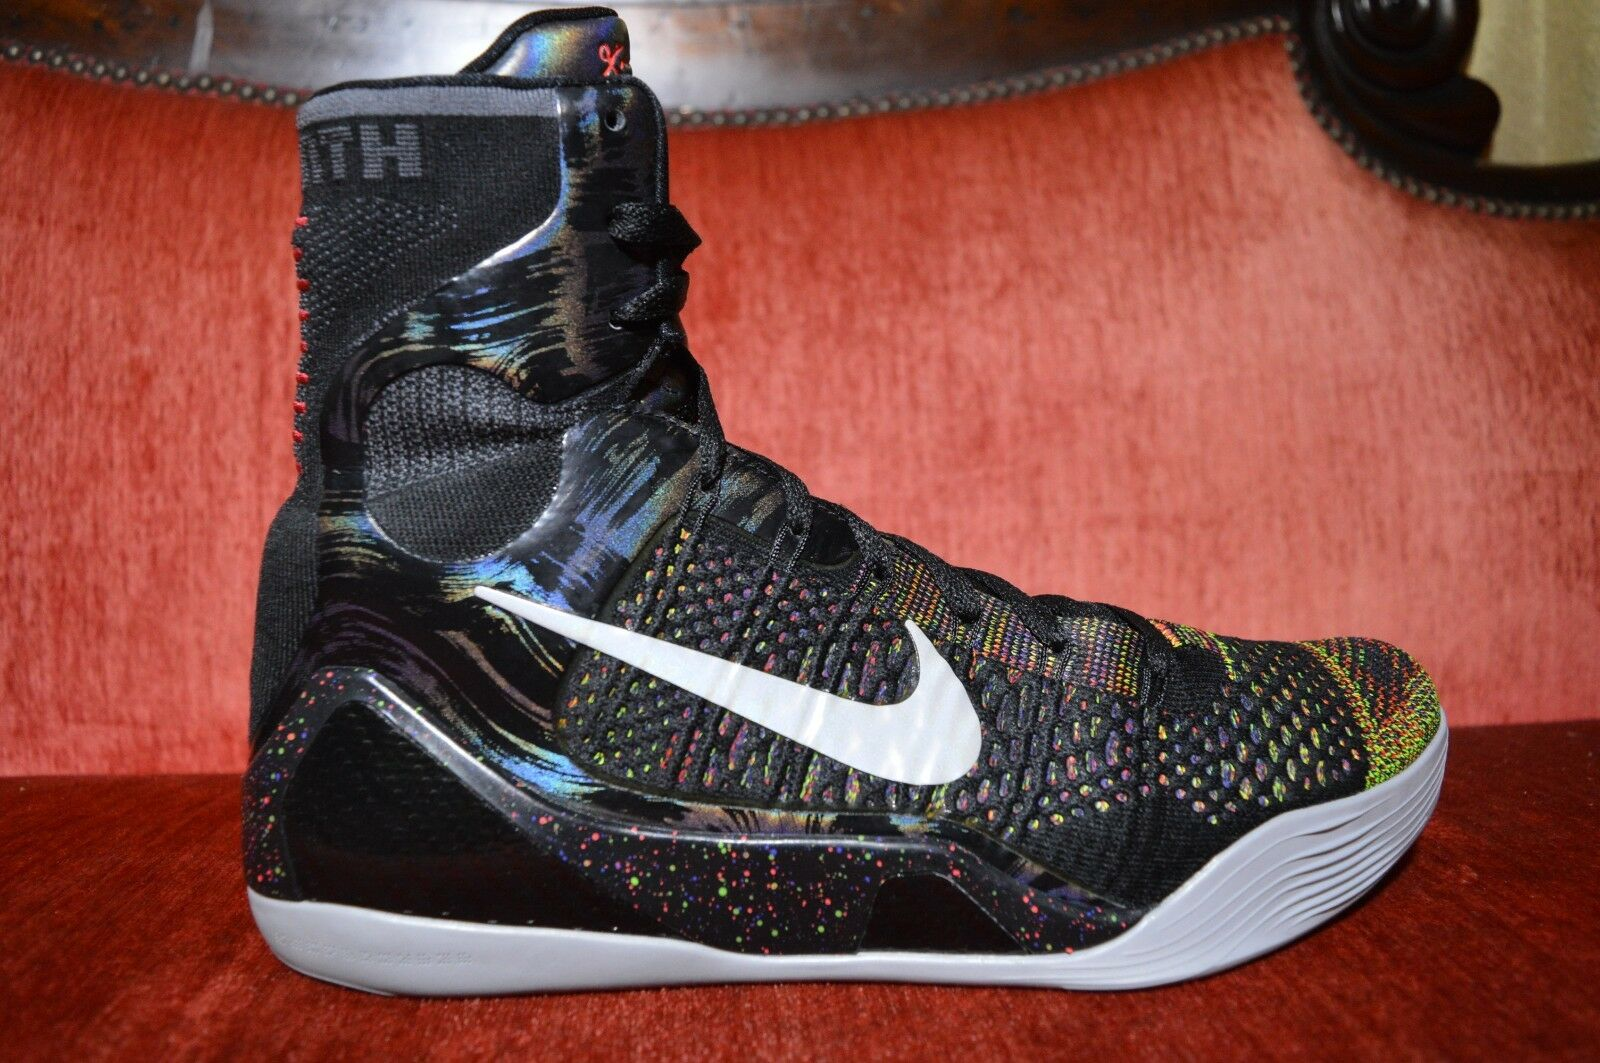 VNDS Nike Air Kobe 9 IX Elite Master Piece Multi color Sneakers Men's Size 11.5